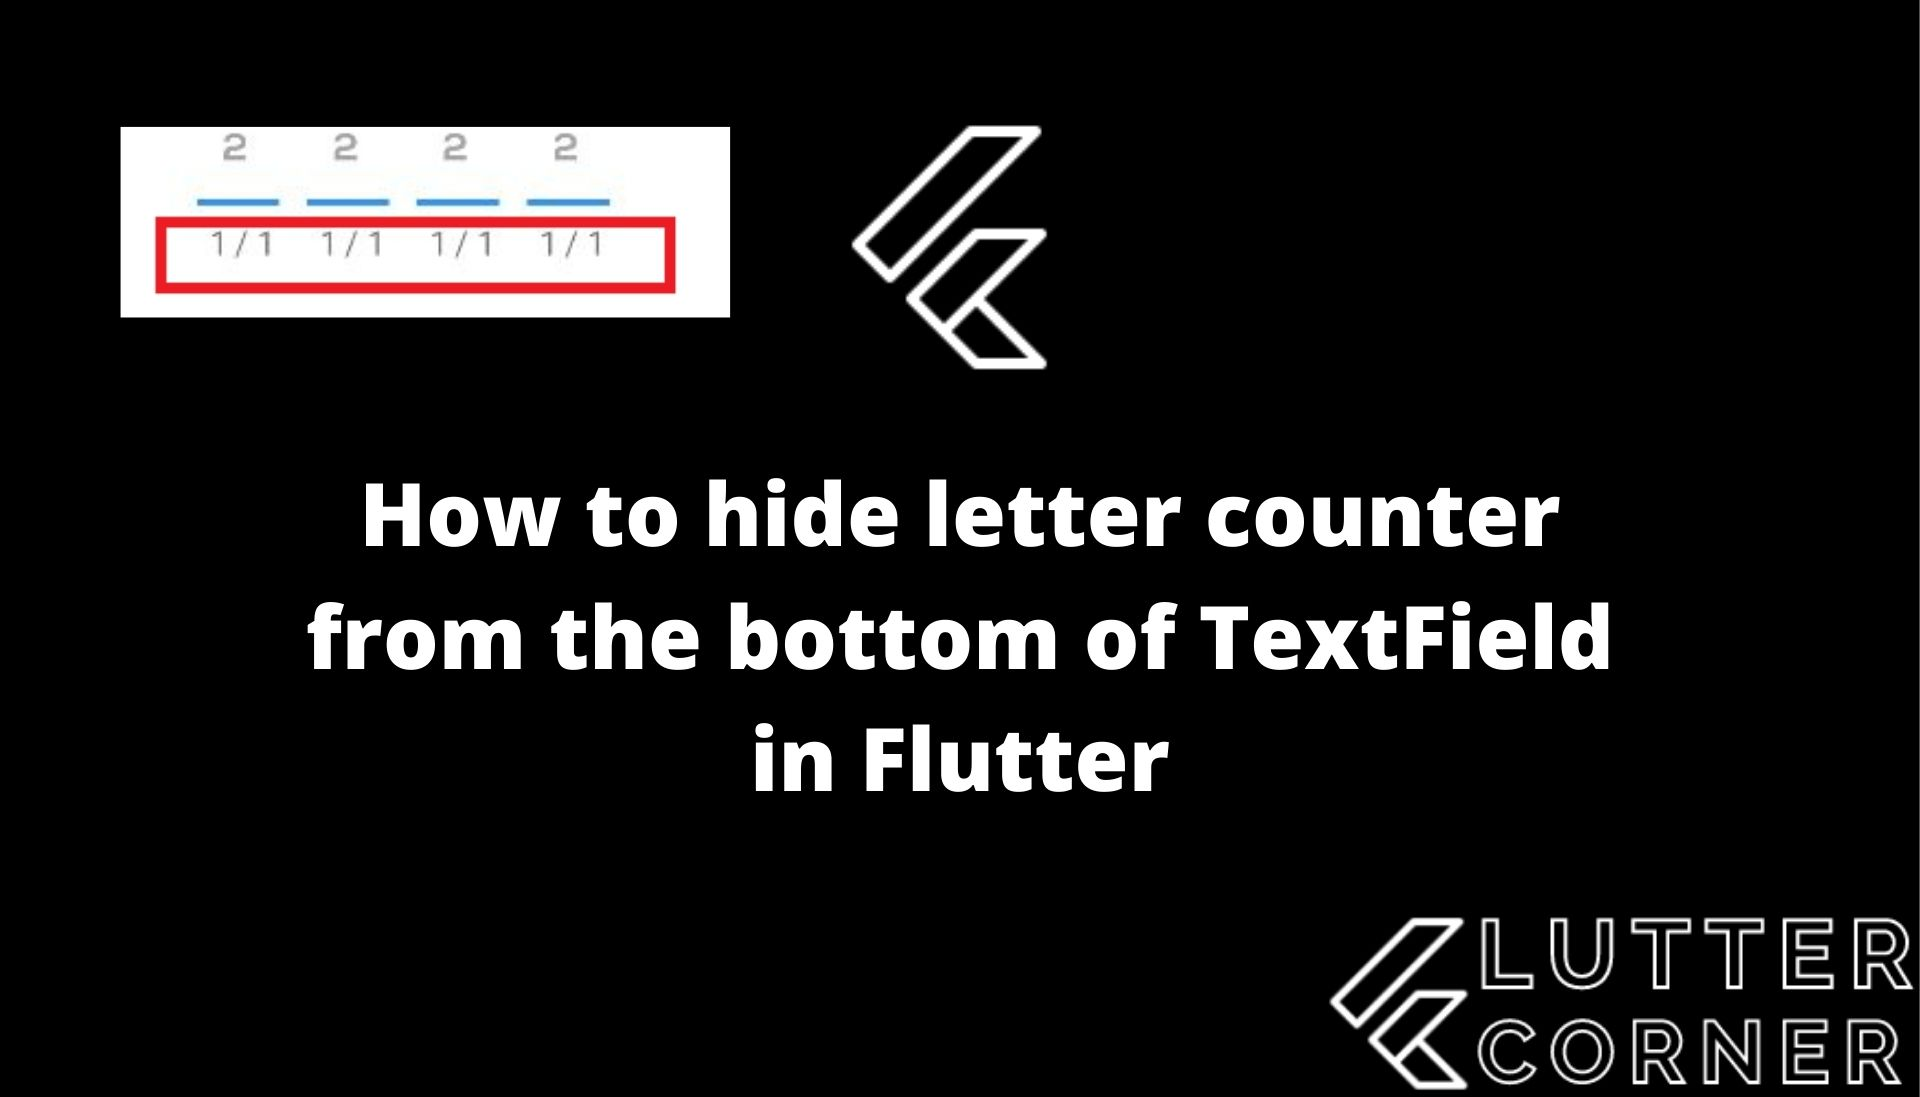 How to hide letter counter from the bottom of TextField in Flutter